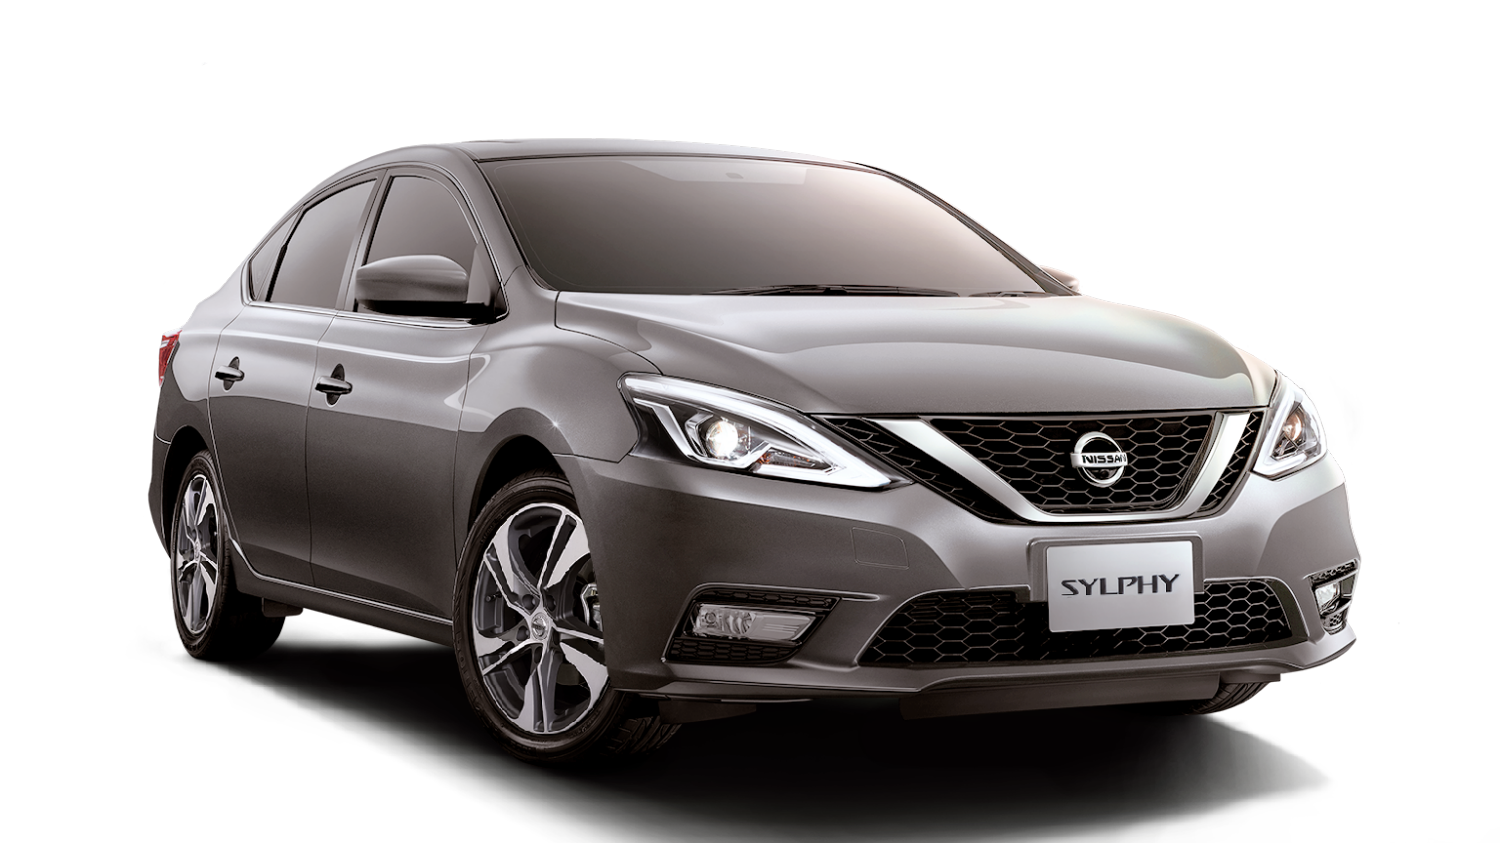 Nissan Singapore Innovation That Excites 200 Sentra Fuse Diagram 2019 Sylphy